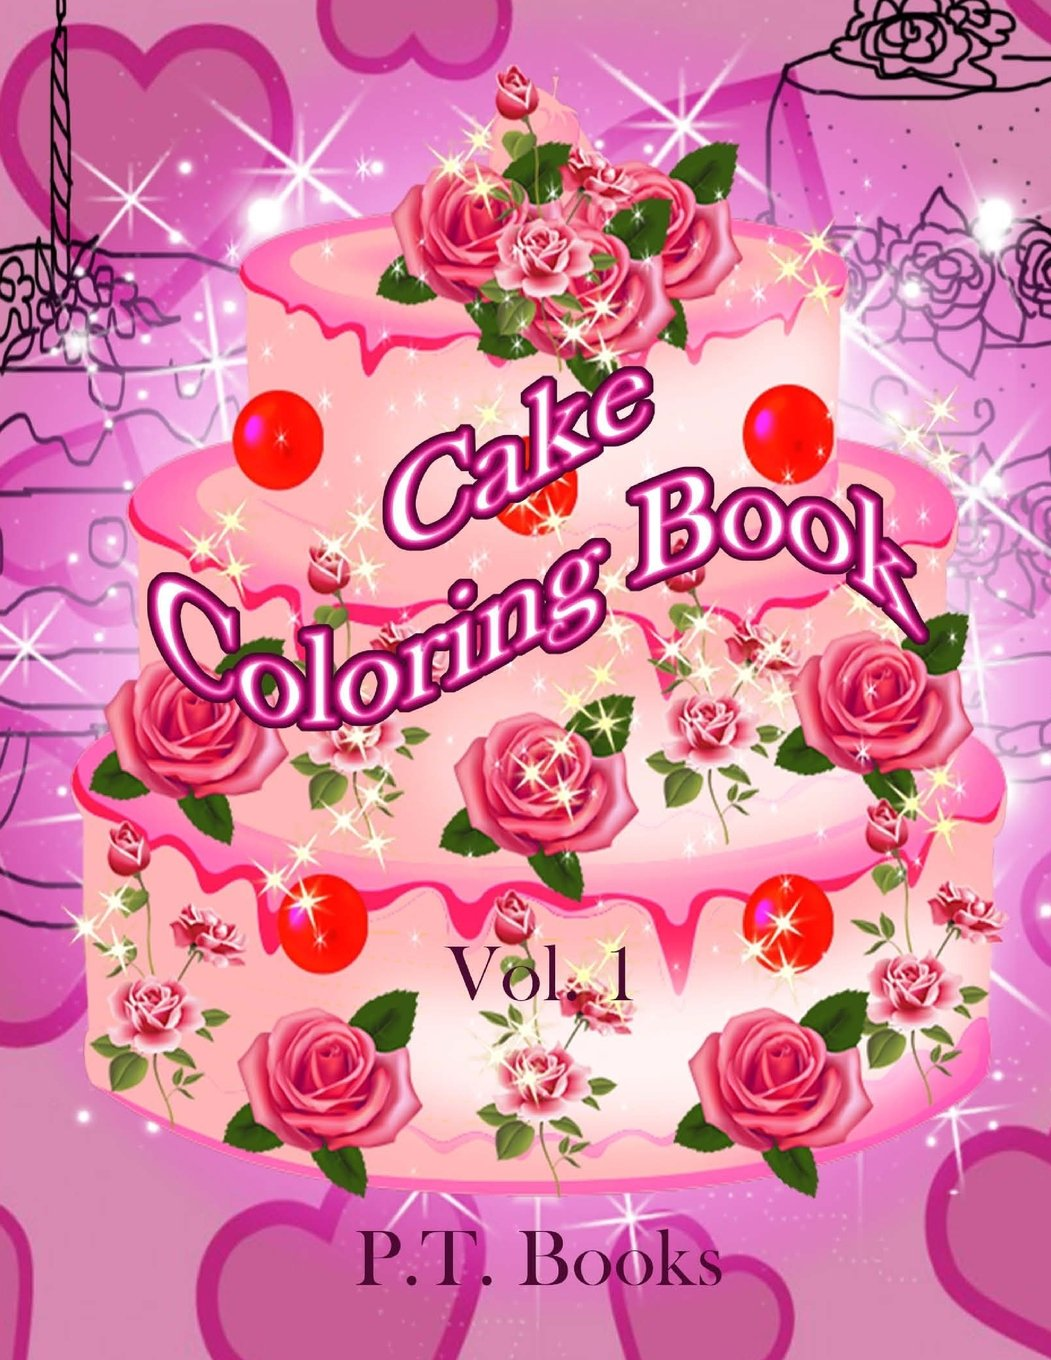 Cake Coloring Book : Volume 1 - For girls, teens and adults. PDF